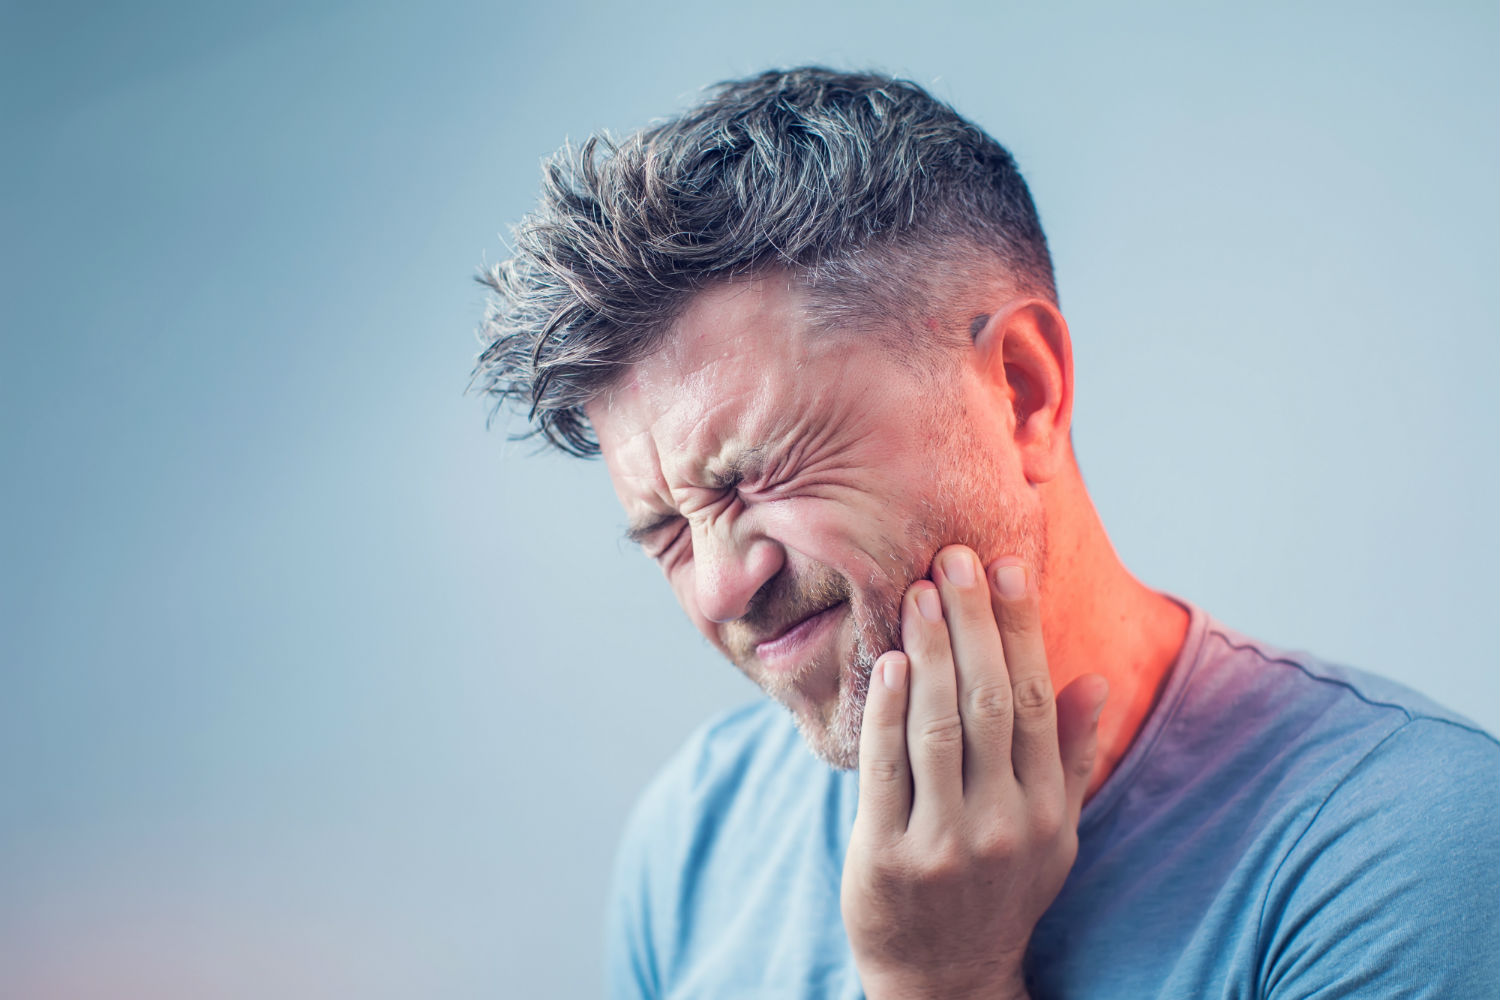 What Should I Do If I Have A Dental Emergency During The COVID-19 Outbreak?